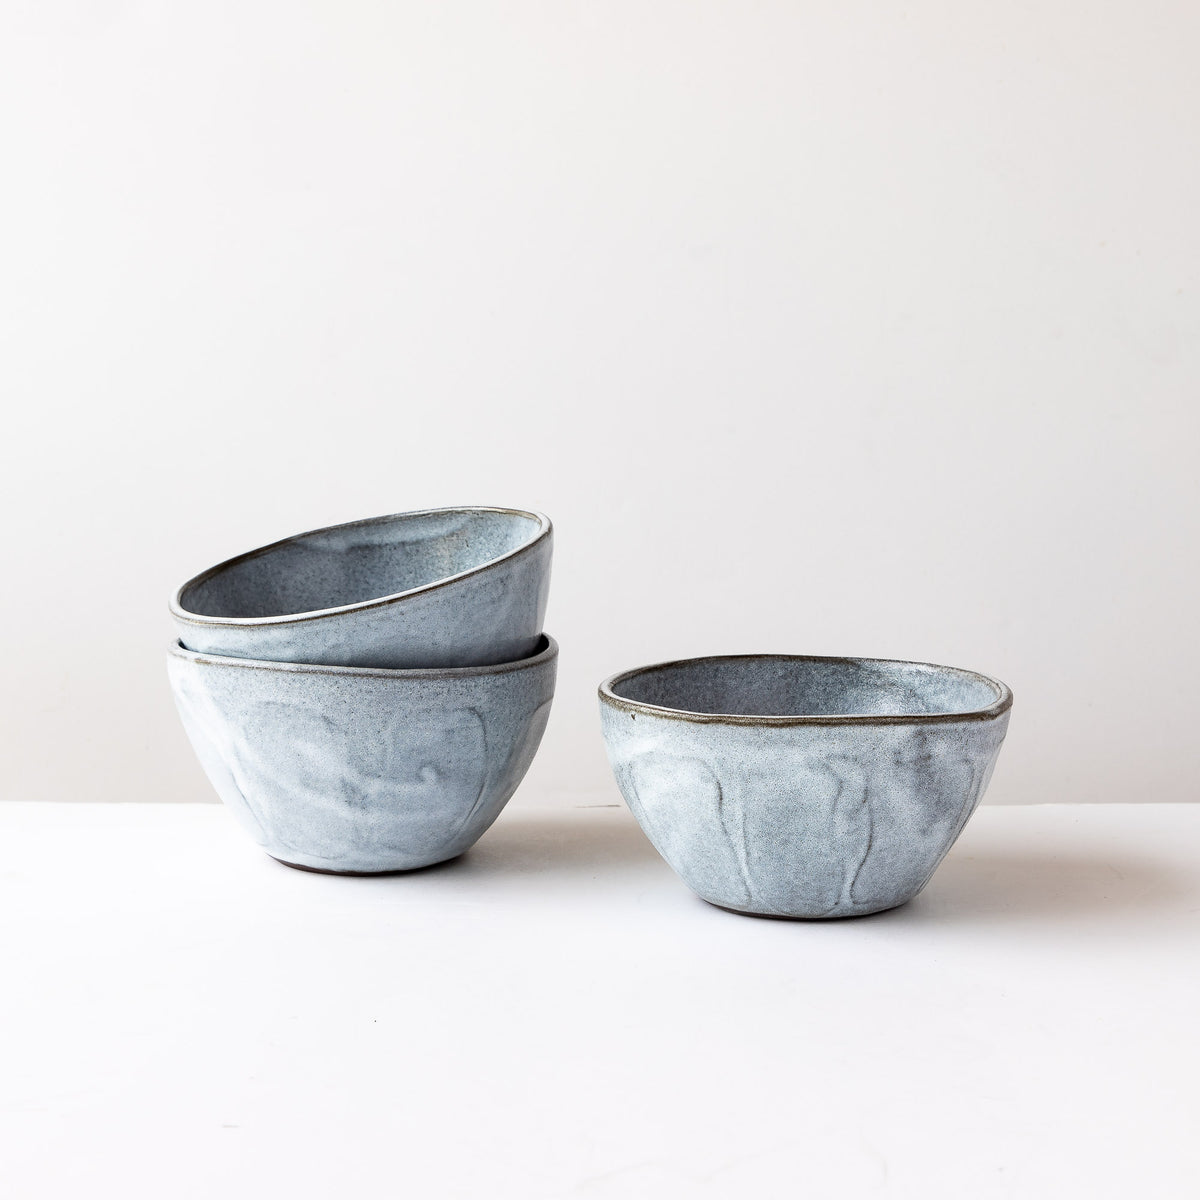 three Handmade Stoneware Breakfast Bowls - Grey & White - Sold by Chic & Basta